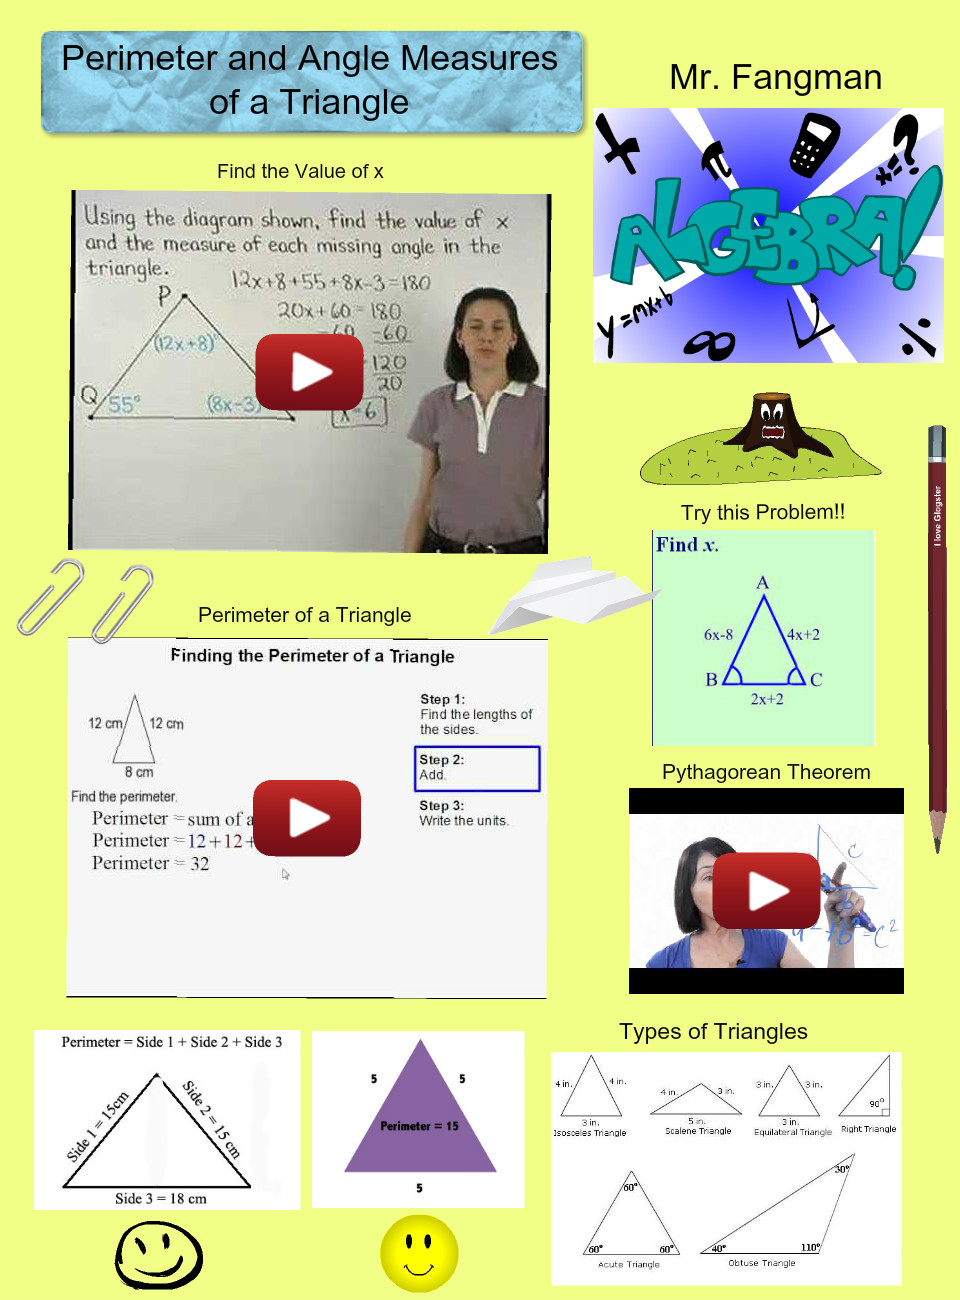 Perimeter and Angle Measures of a Triangle